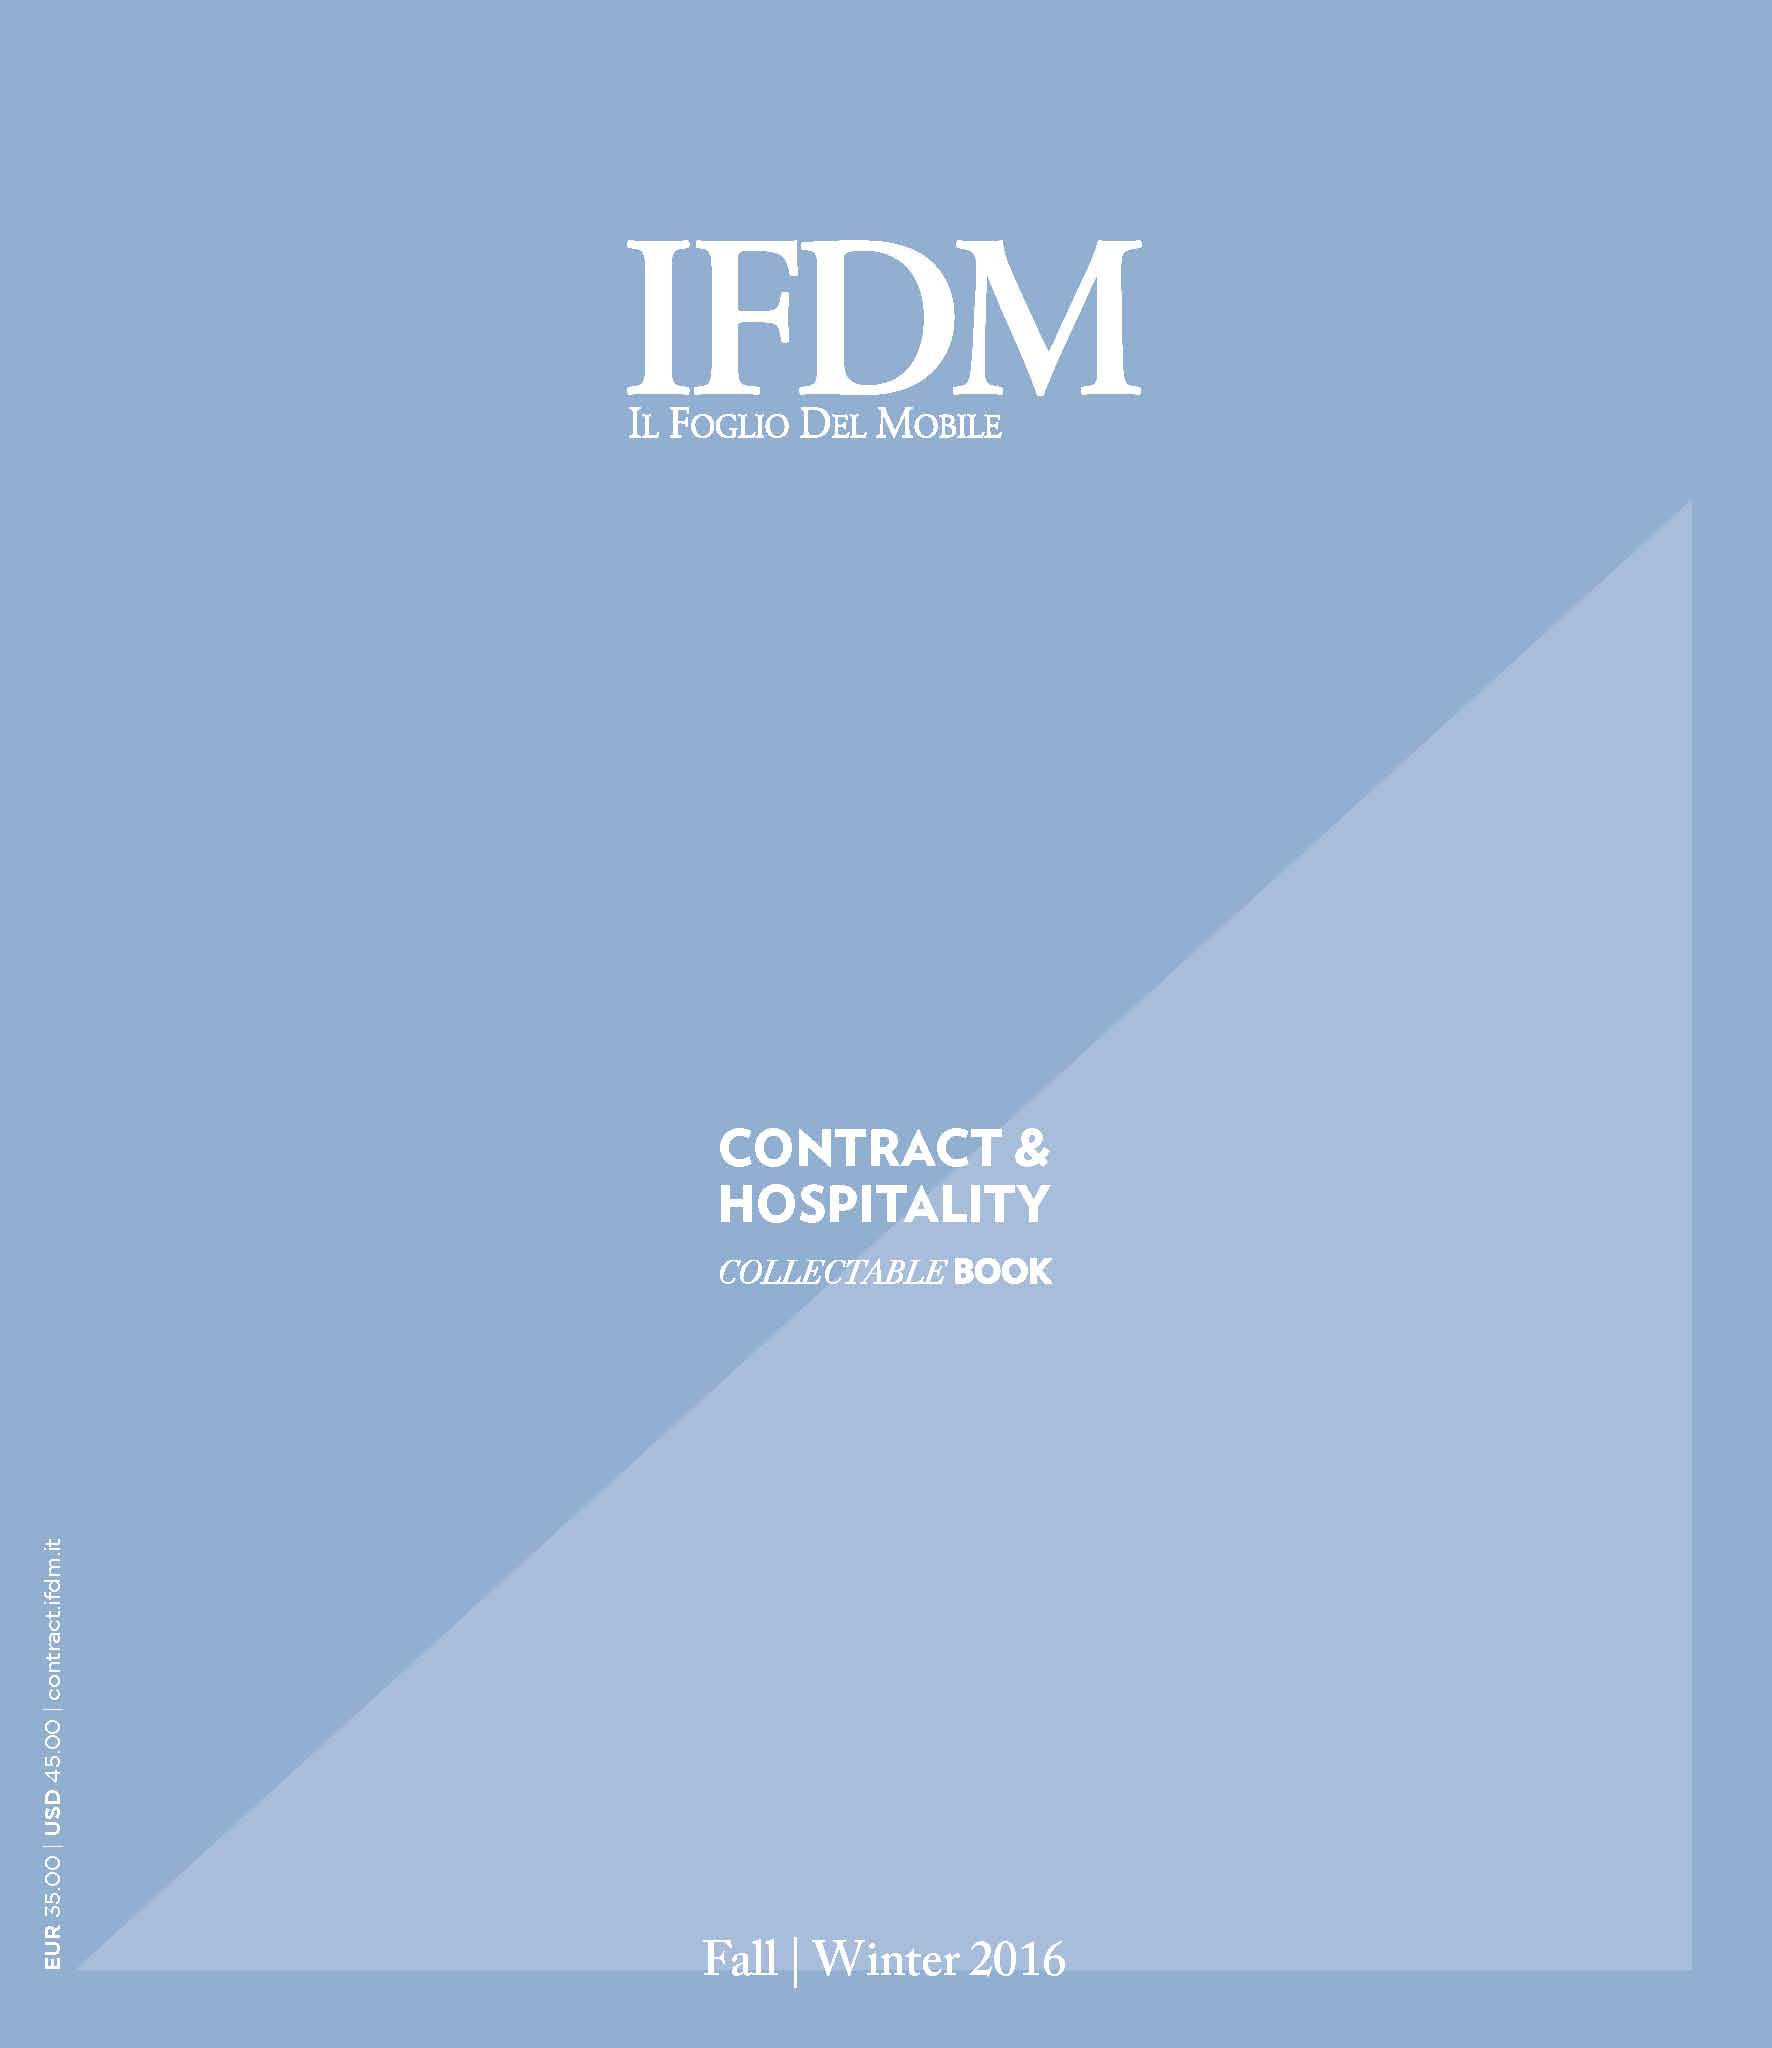 IFDM - Fall_Winter